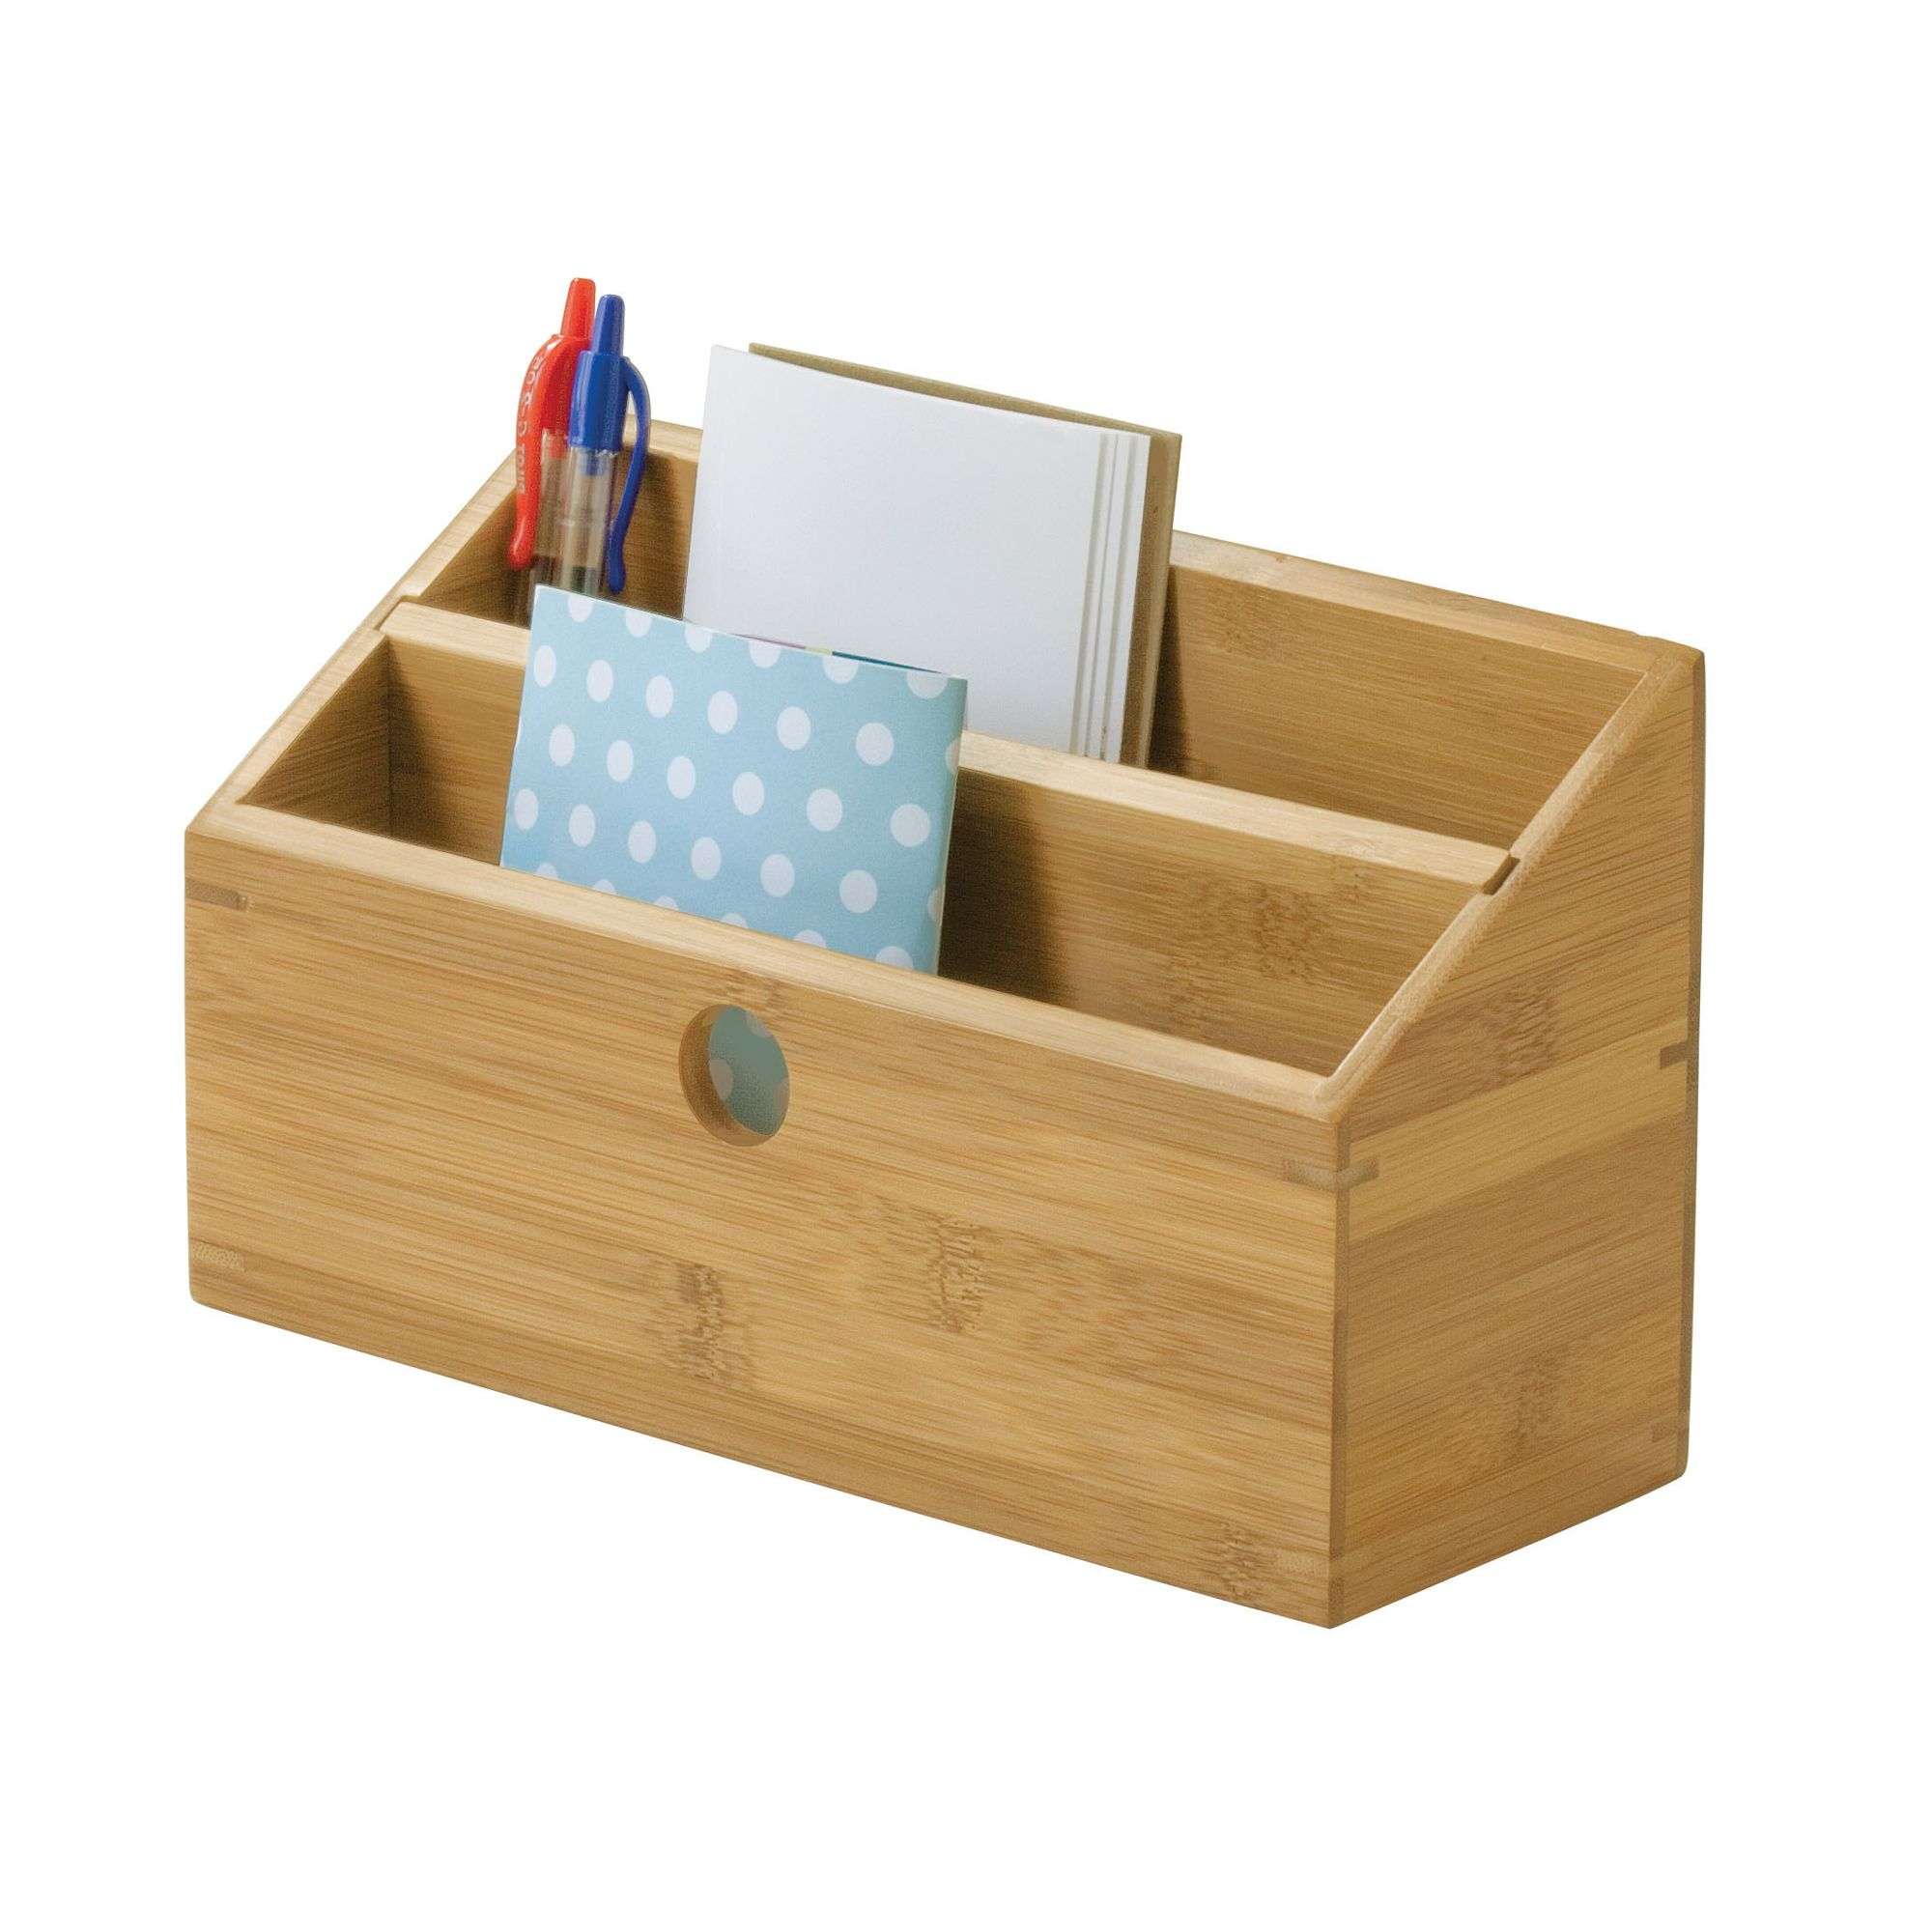 Desk Organizer Design 25 Model Wooden Desk Organizer Plans Egorlin